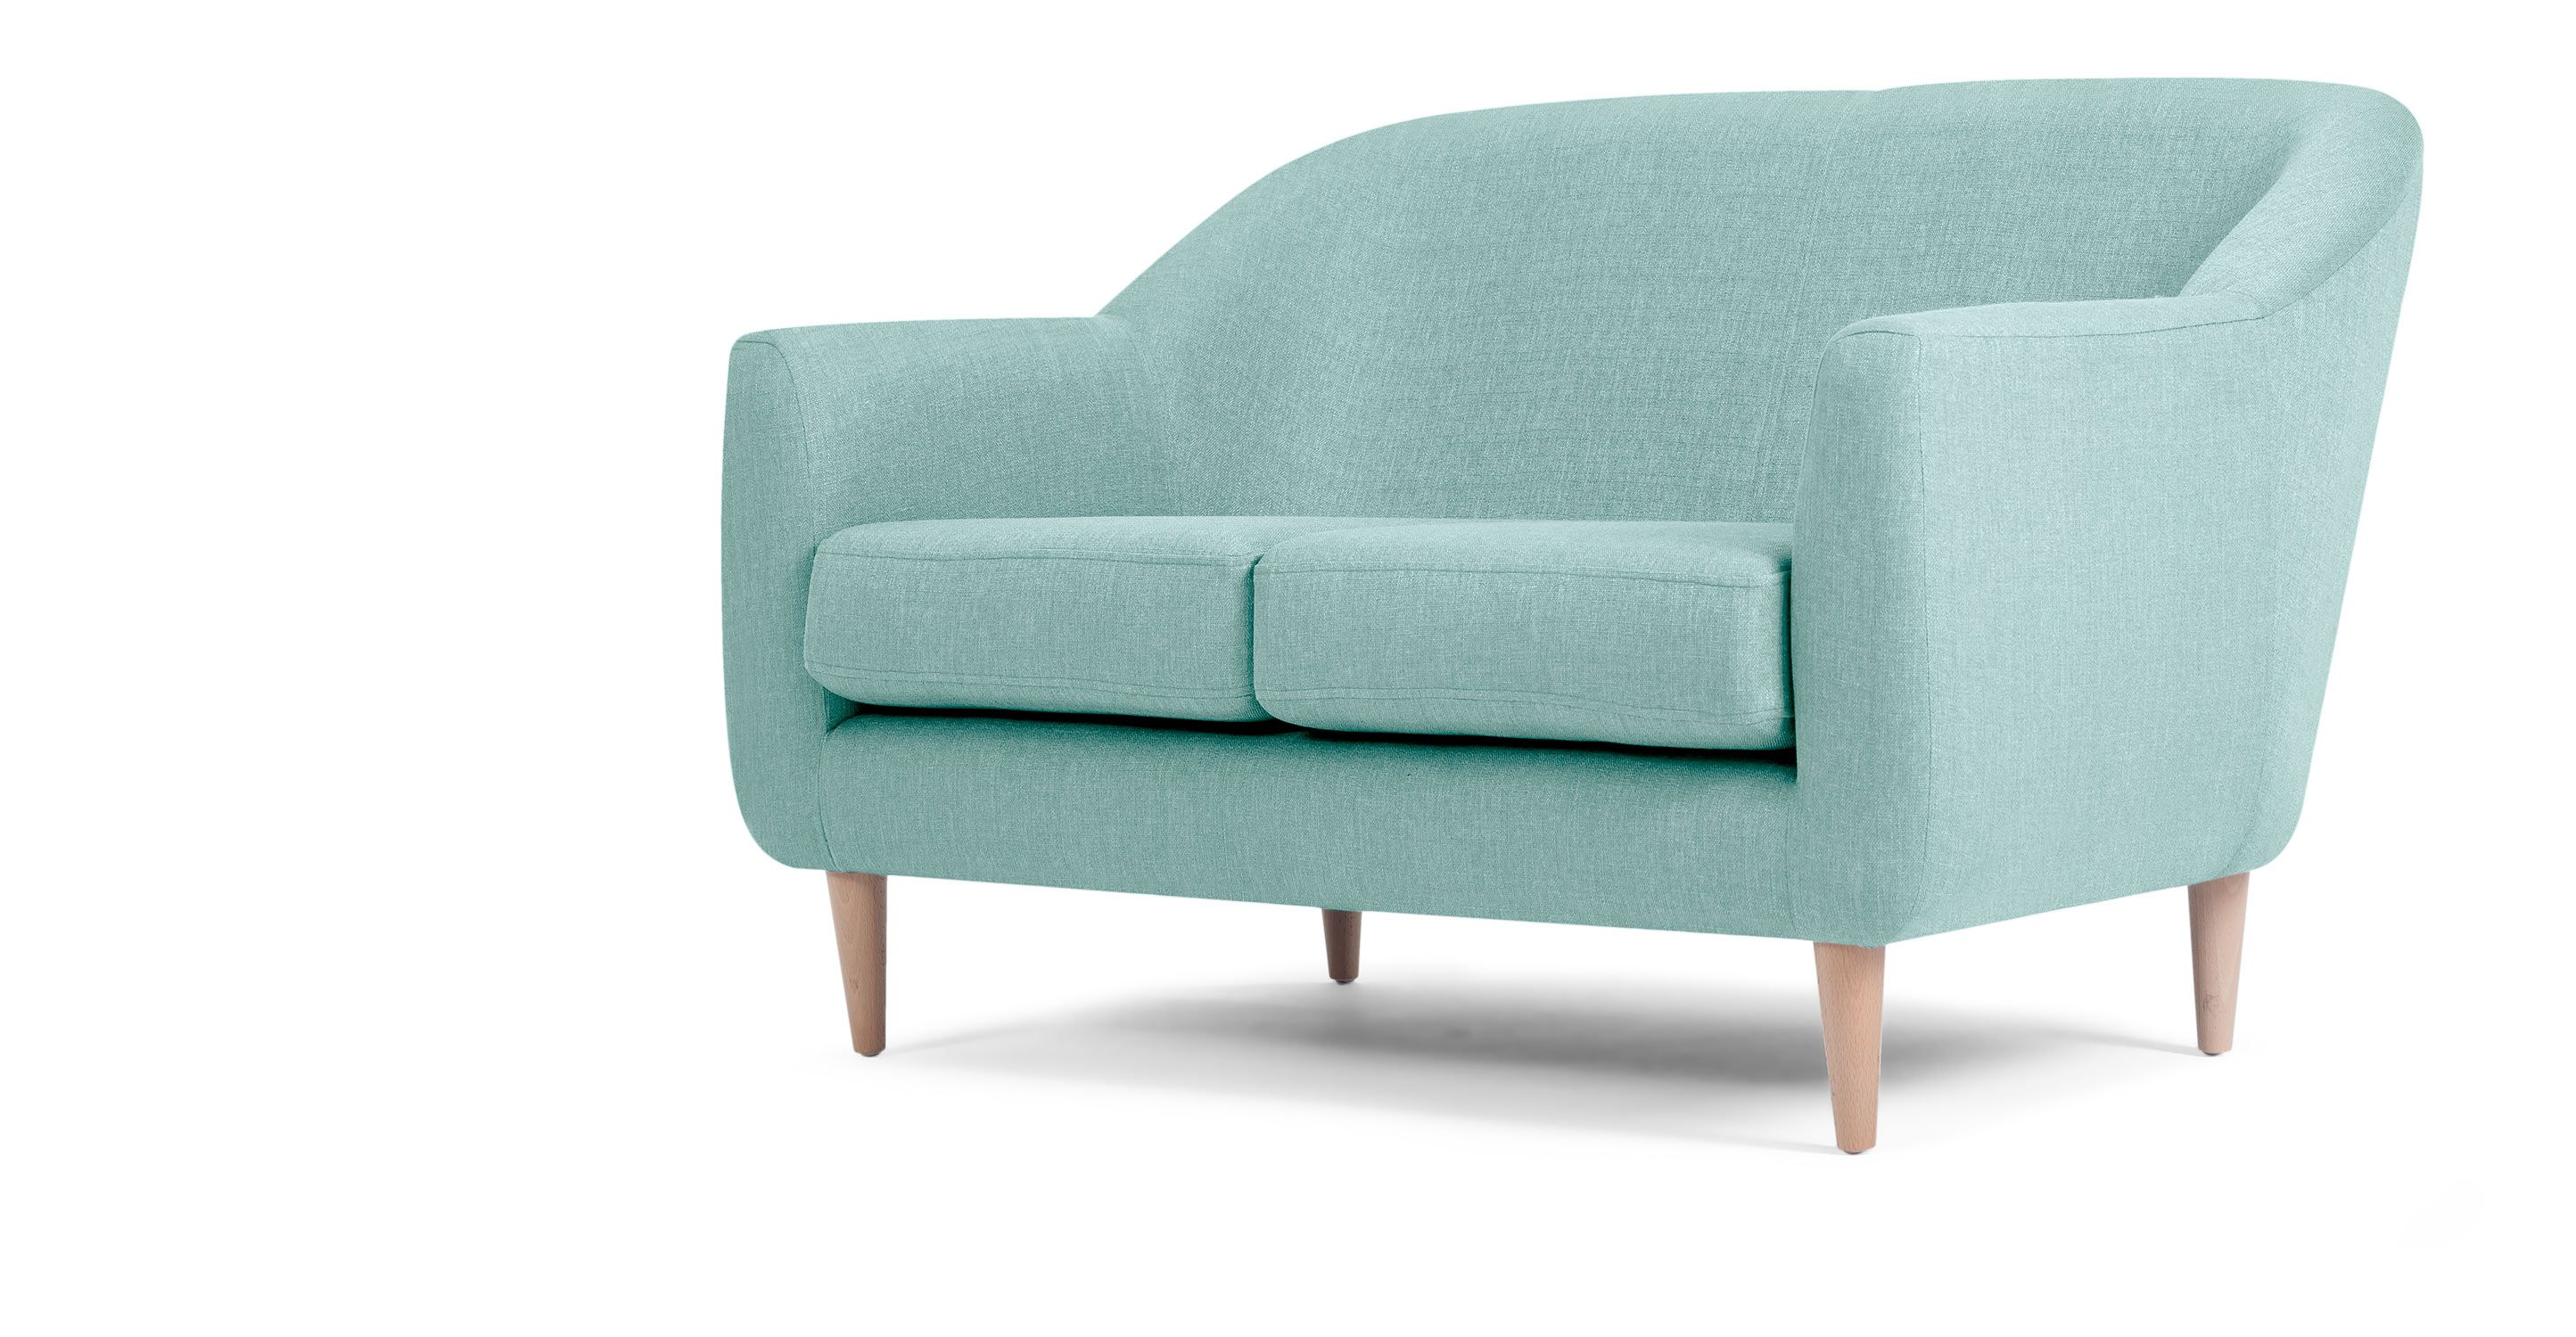 For The London Flat 2 Seater Sofa In Turquoise Blue